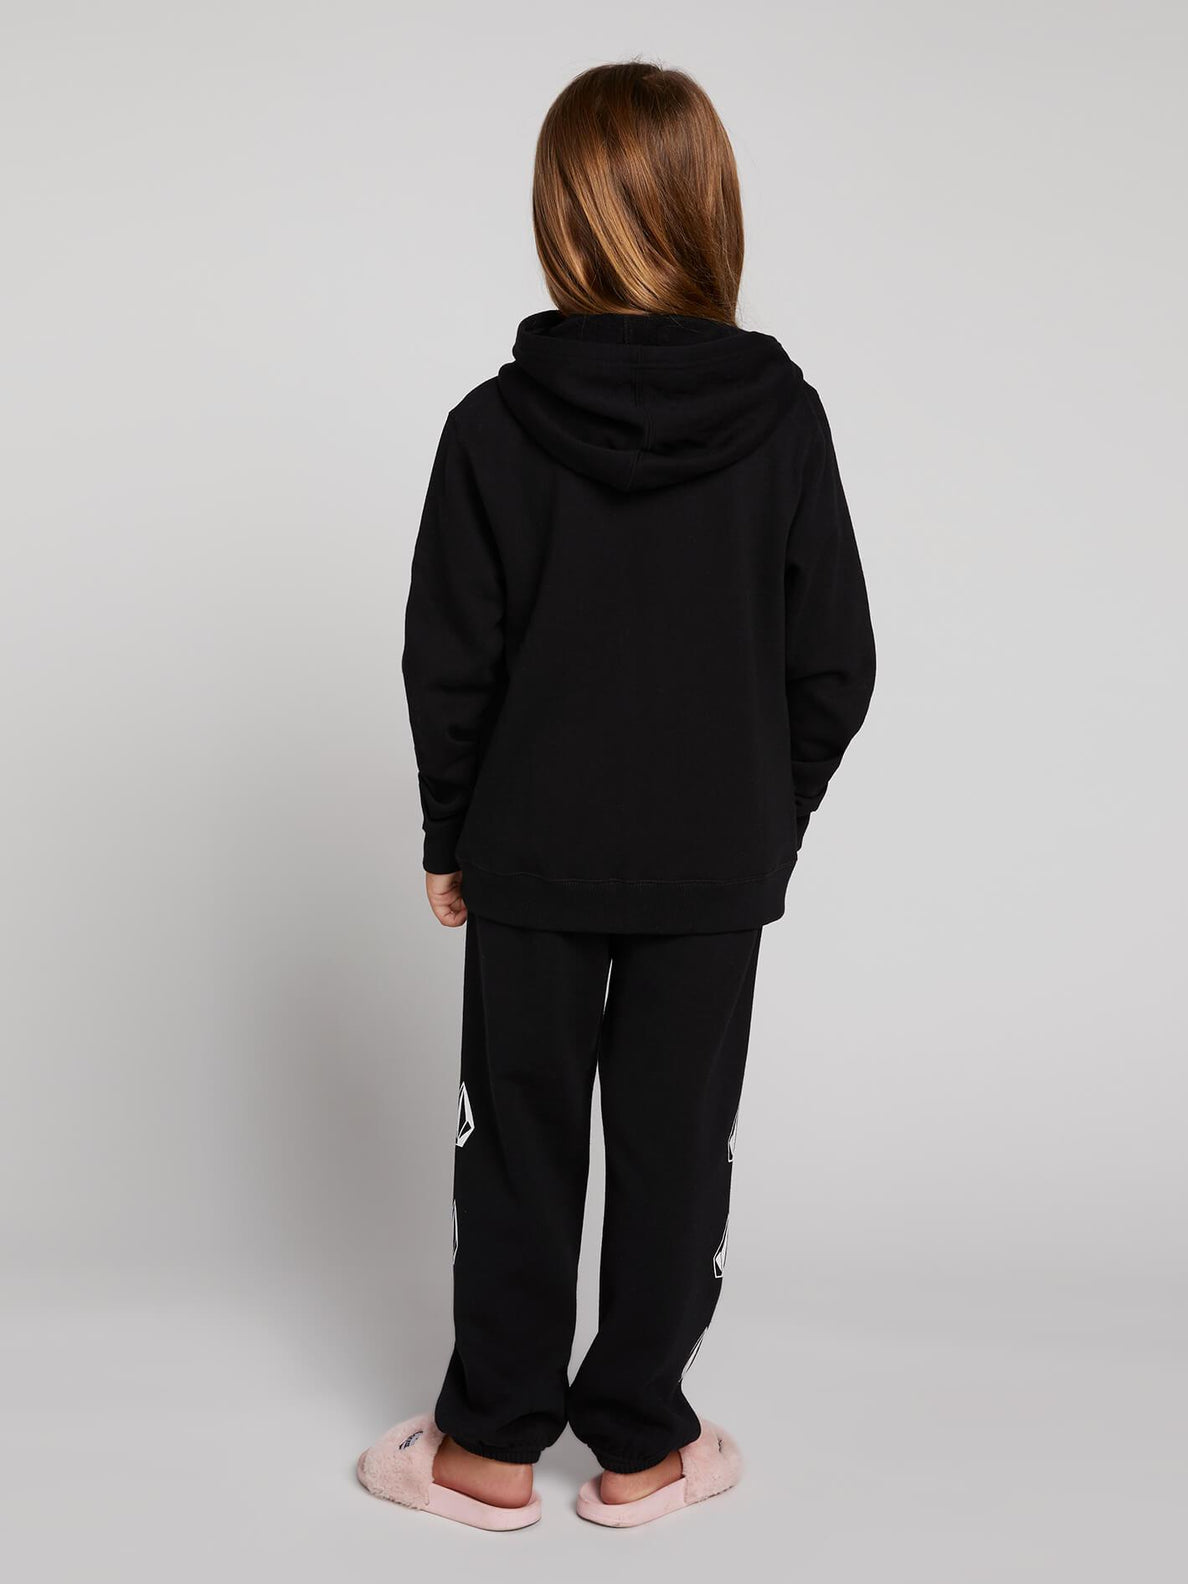 Big Girls Zippety Zip Hoodie In Black, Back View